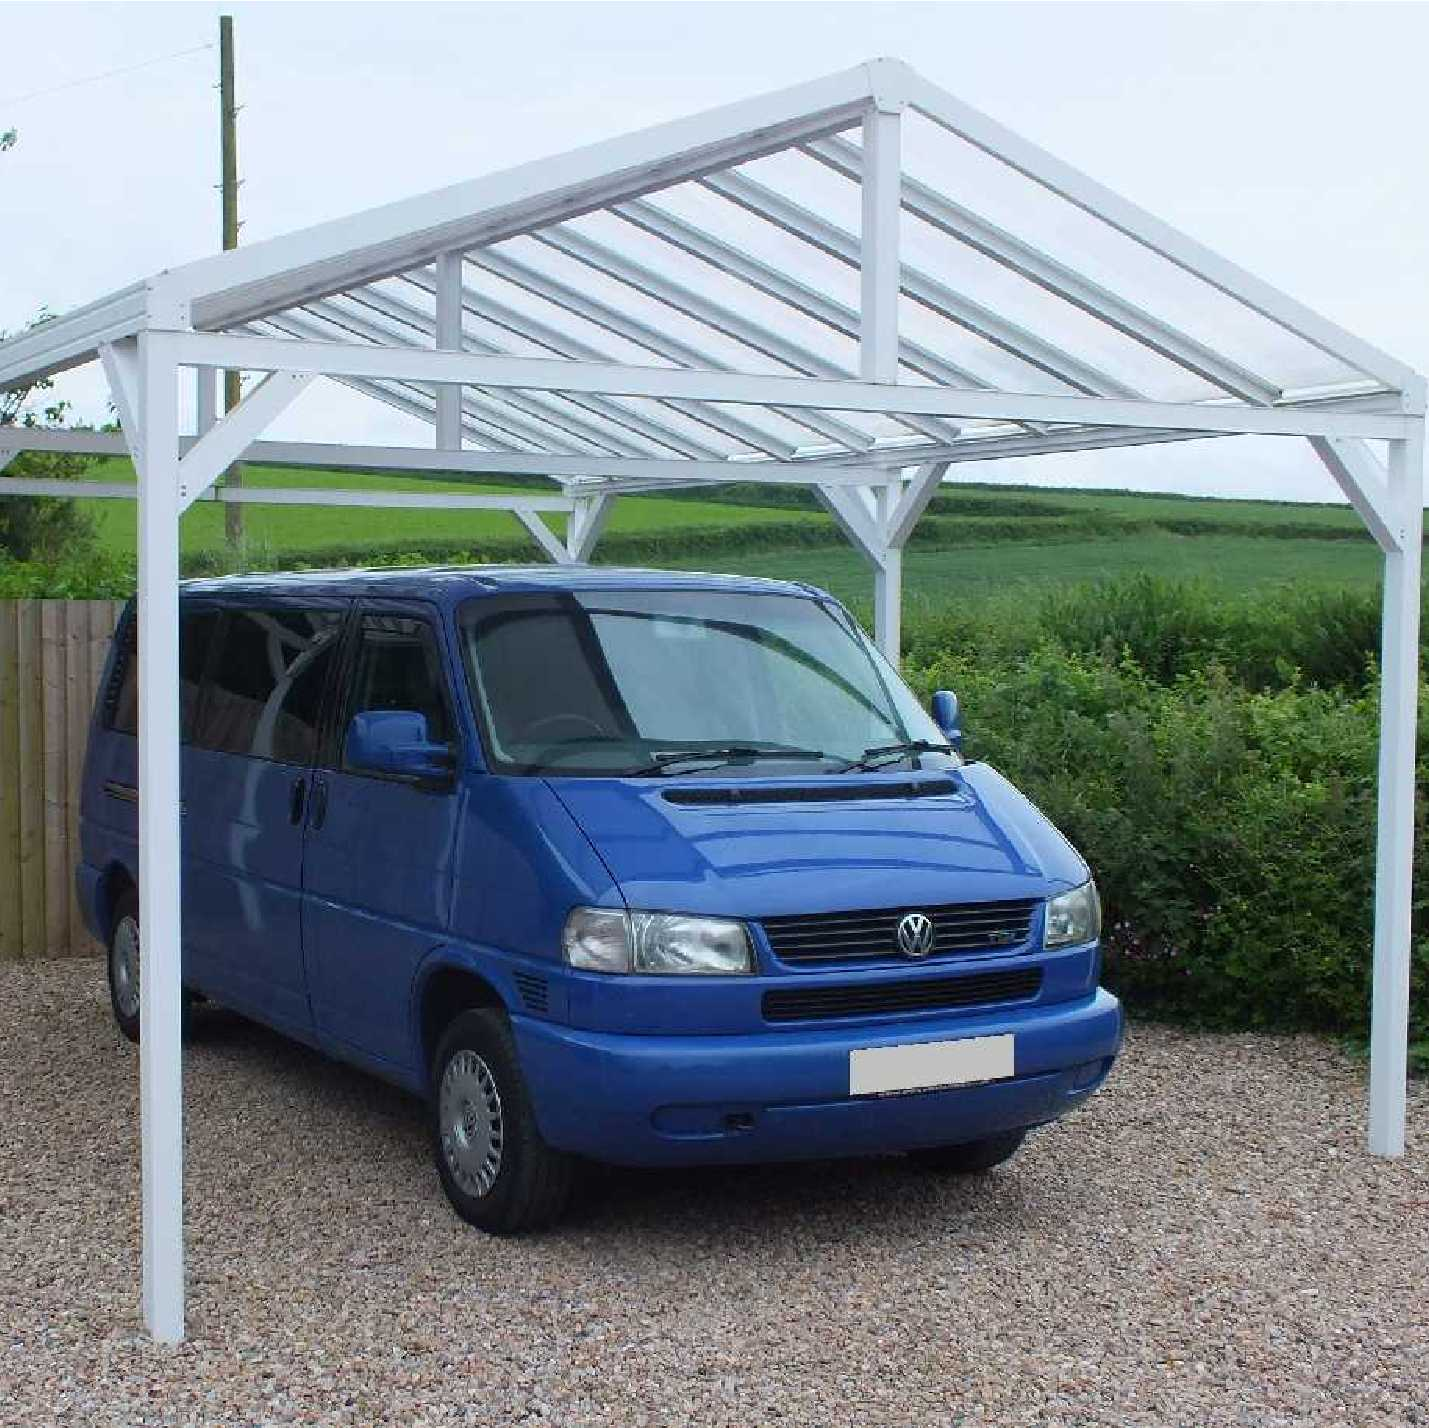 Omega Smart Free-Standing, Gable-Roof (type 1) Canopy with 16mm Polycarbonate Glazing - 4.2m (W) x 3.5m (P), (6) Supporting Posts